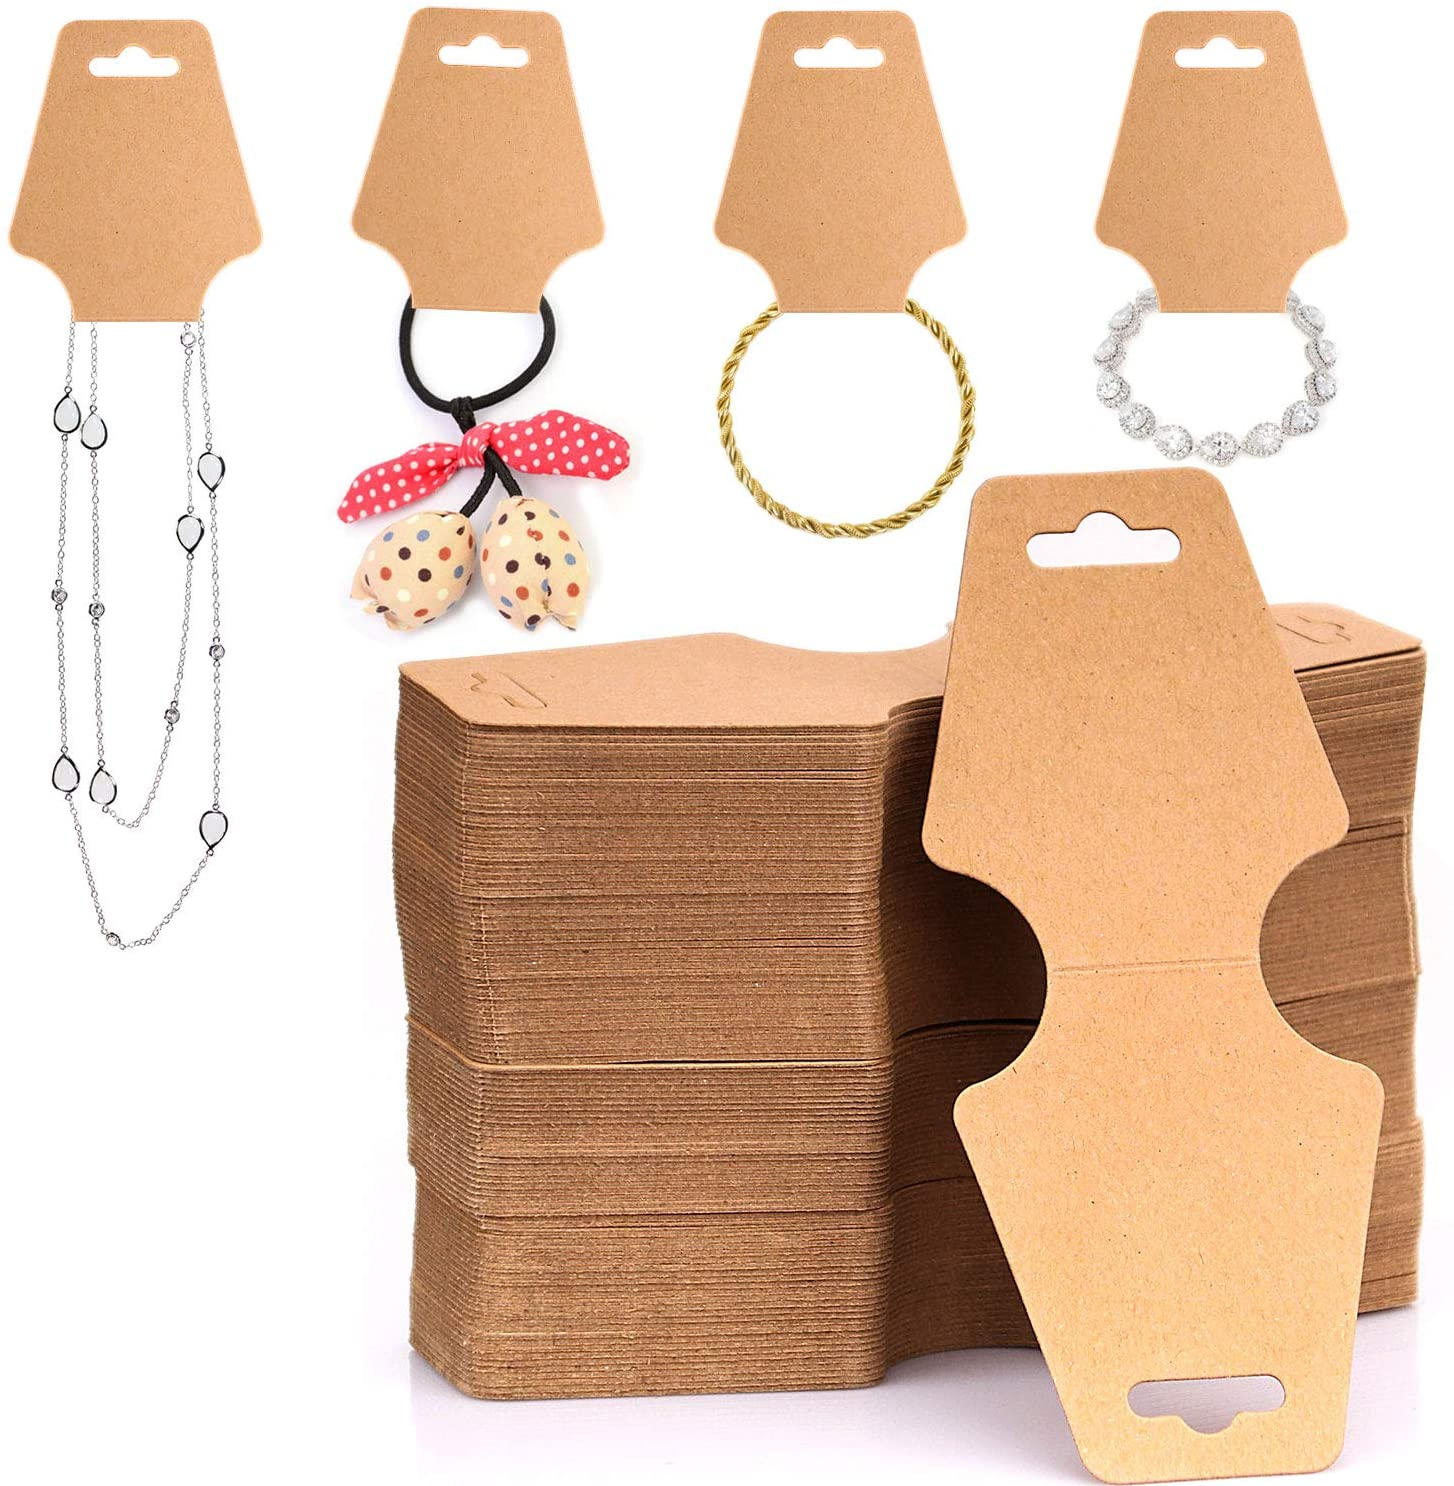 ZOENHOU 700 PCS 4.7 x 2 Inches Necklace Display Cards, Blank Jewelry Cards Holder, Bracelet Choker Hair Clip Accessories Kraft Cardboard Display Cards, Brown